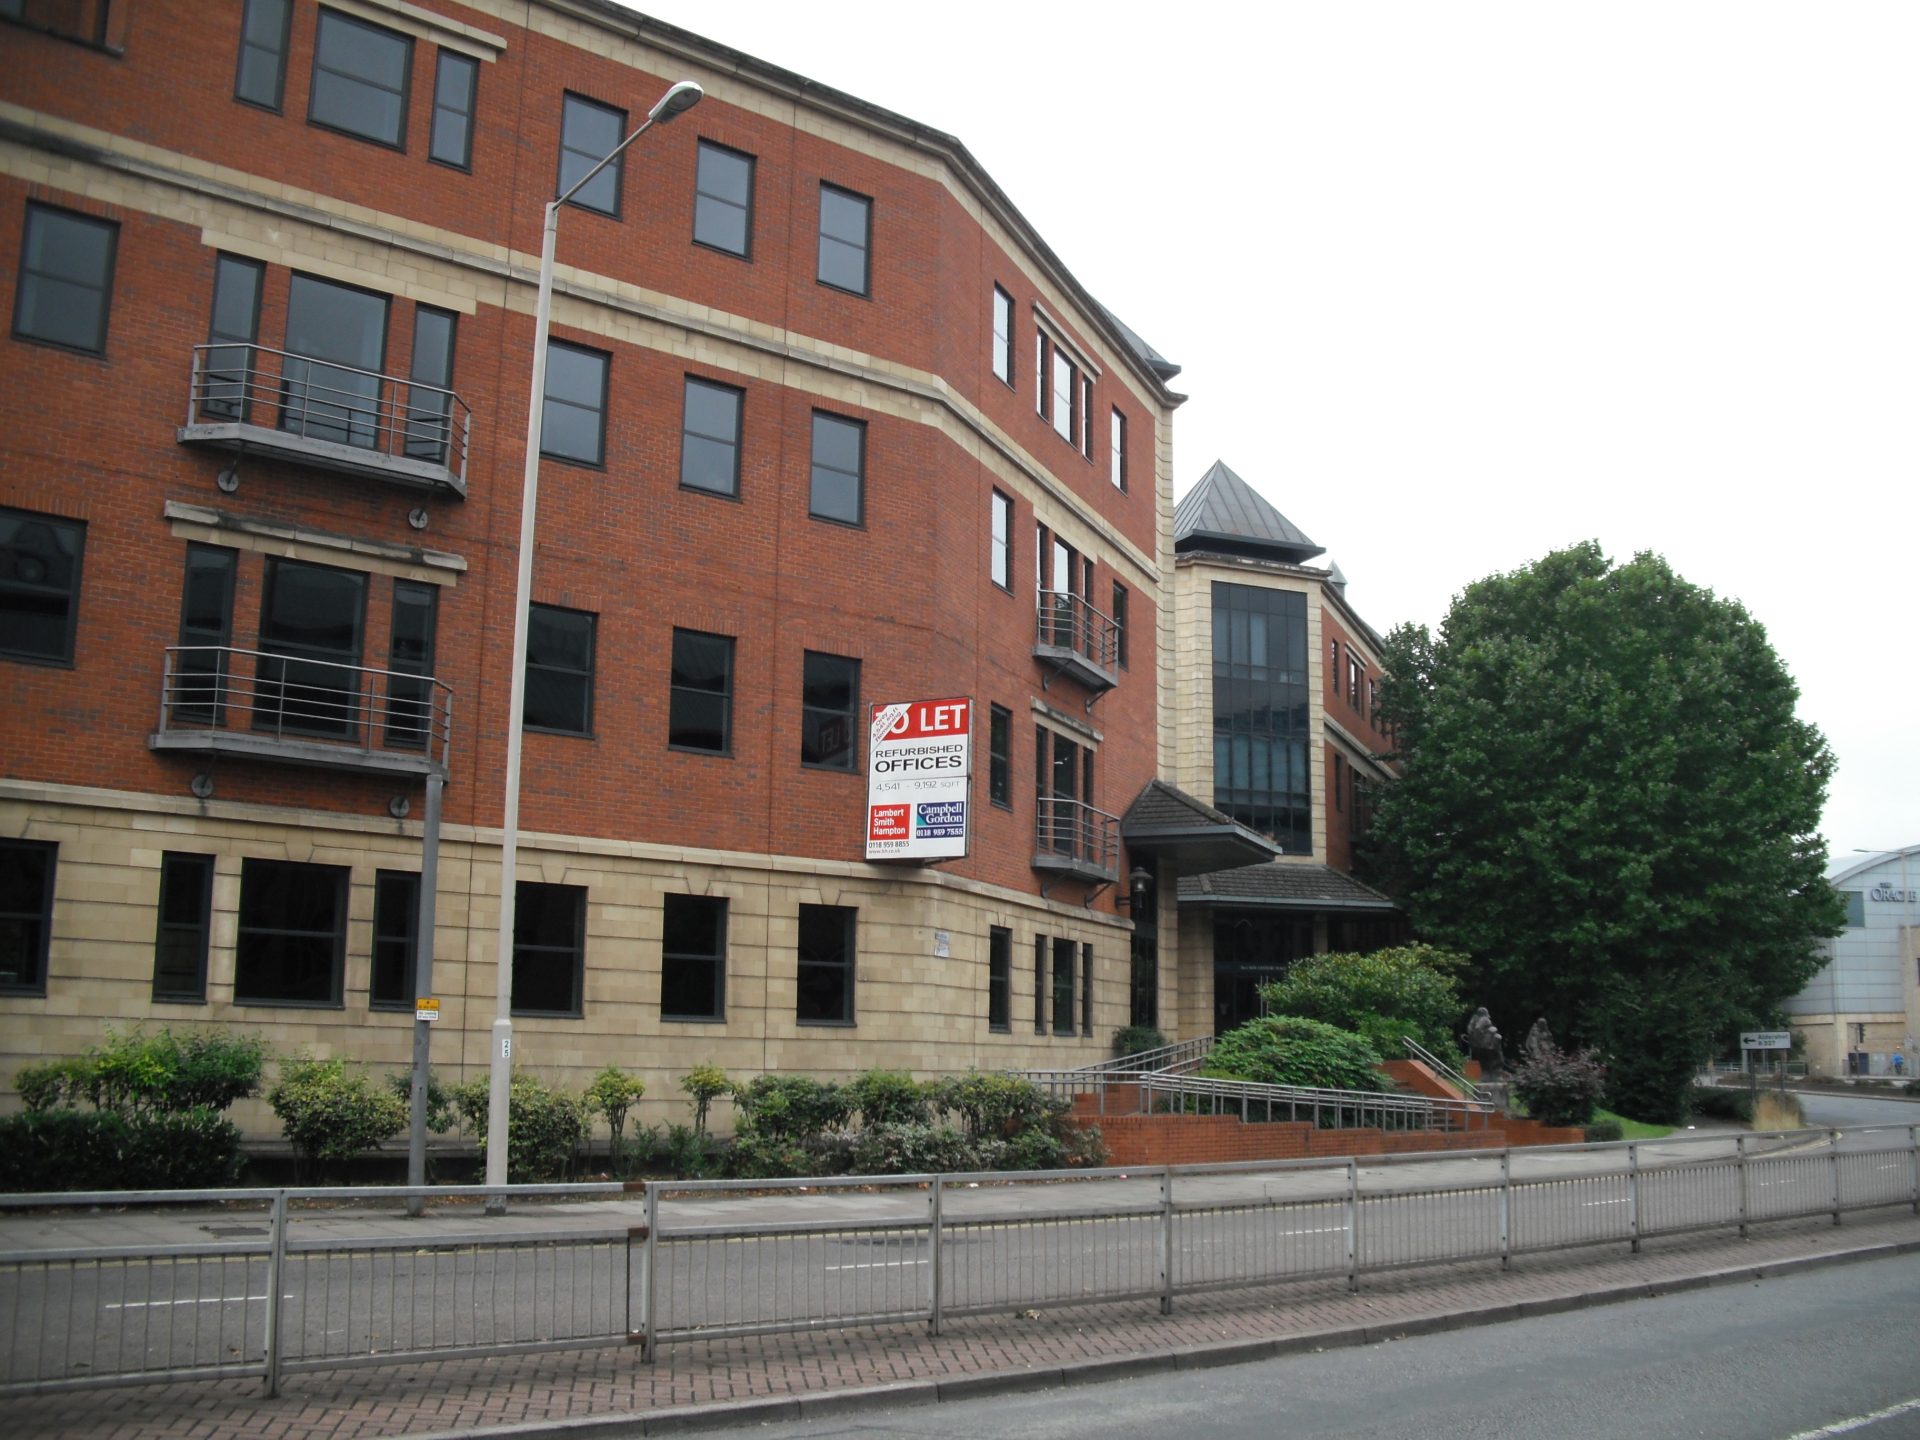 Bomb search needed before 133 flats scheme